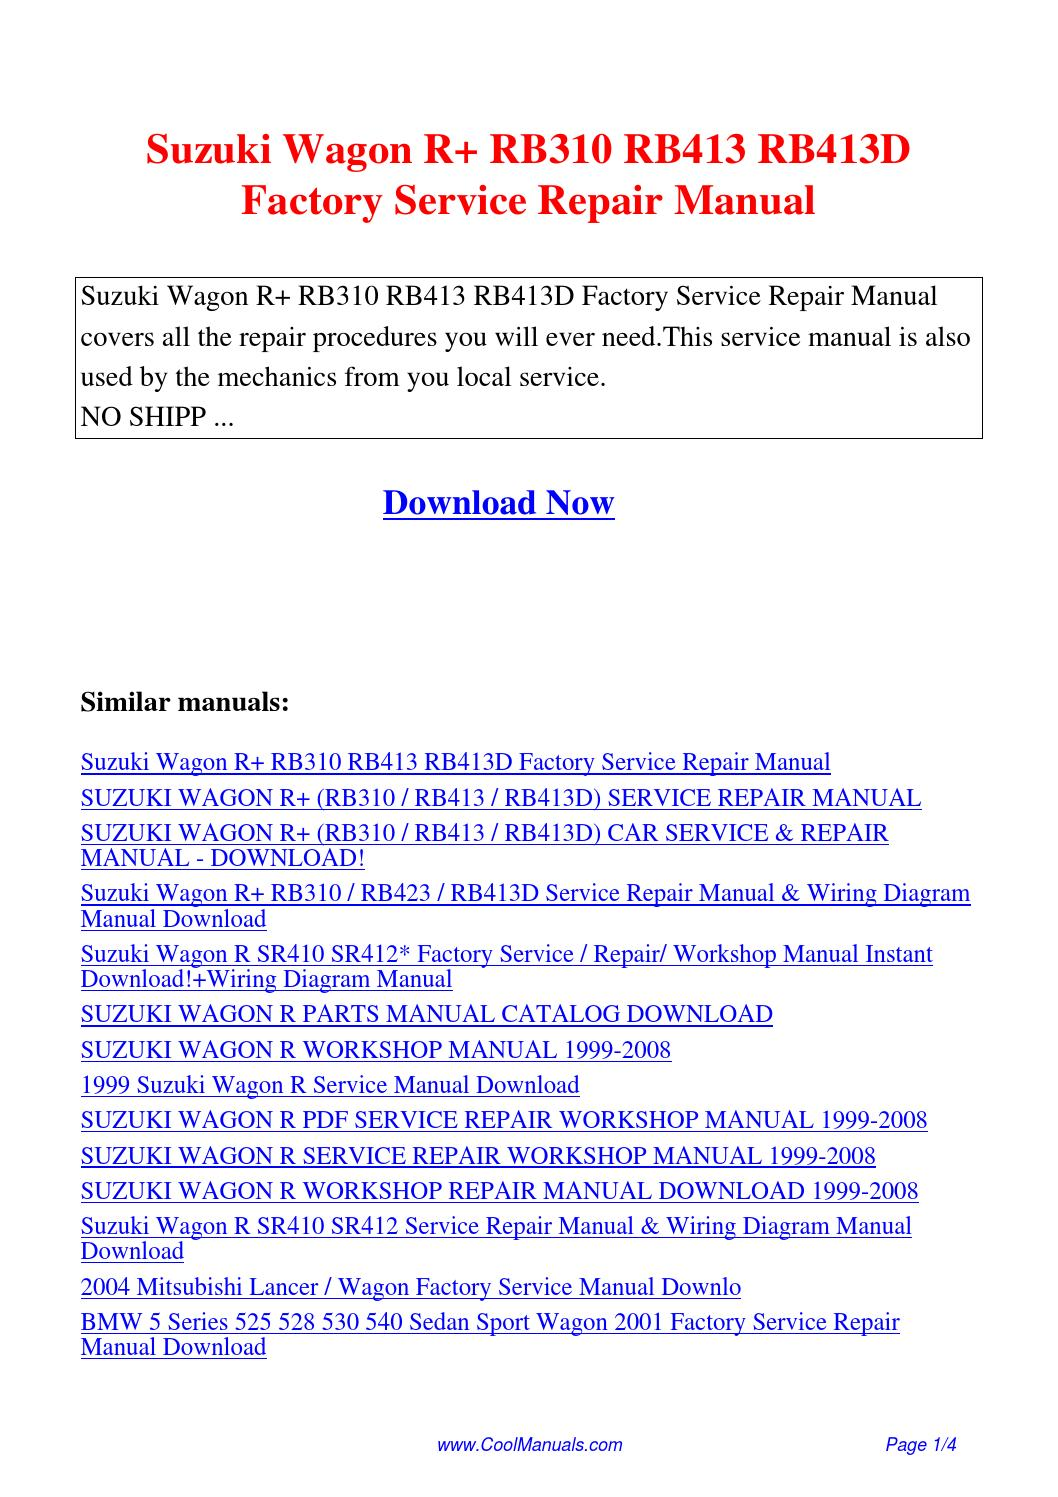 Suzuki Wagon R RB310 RB413 RB413D Factory Service Repair Manual.pdf by  Guang Hui - issuu